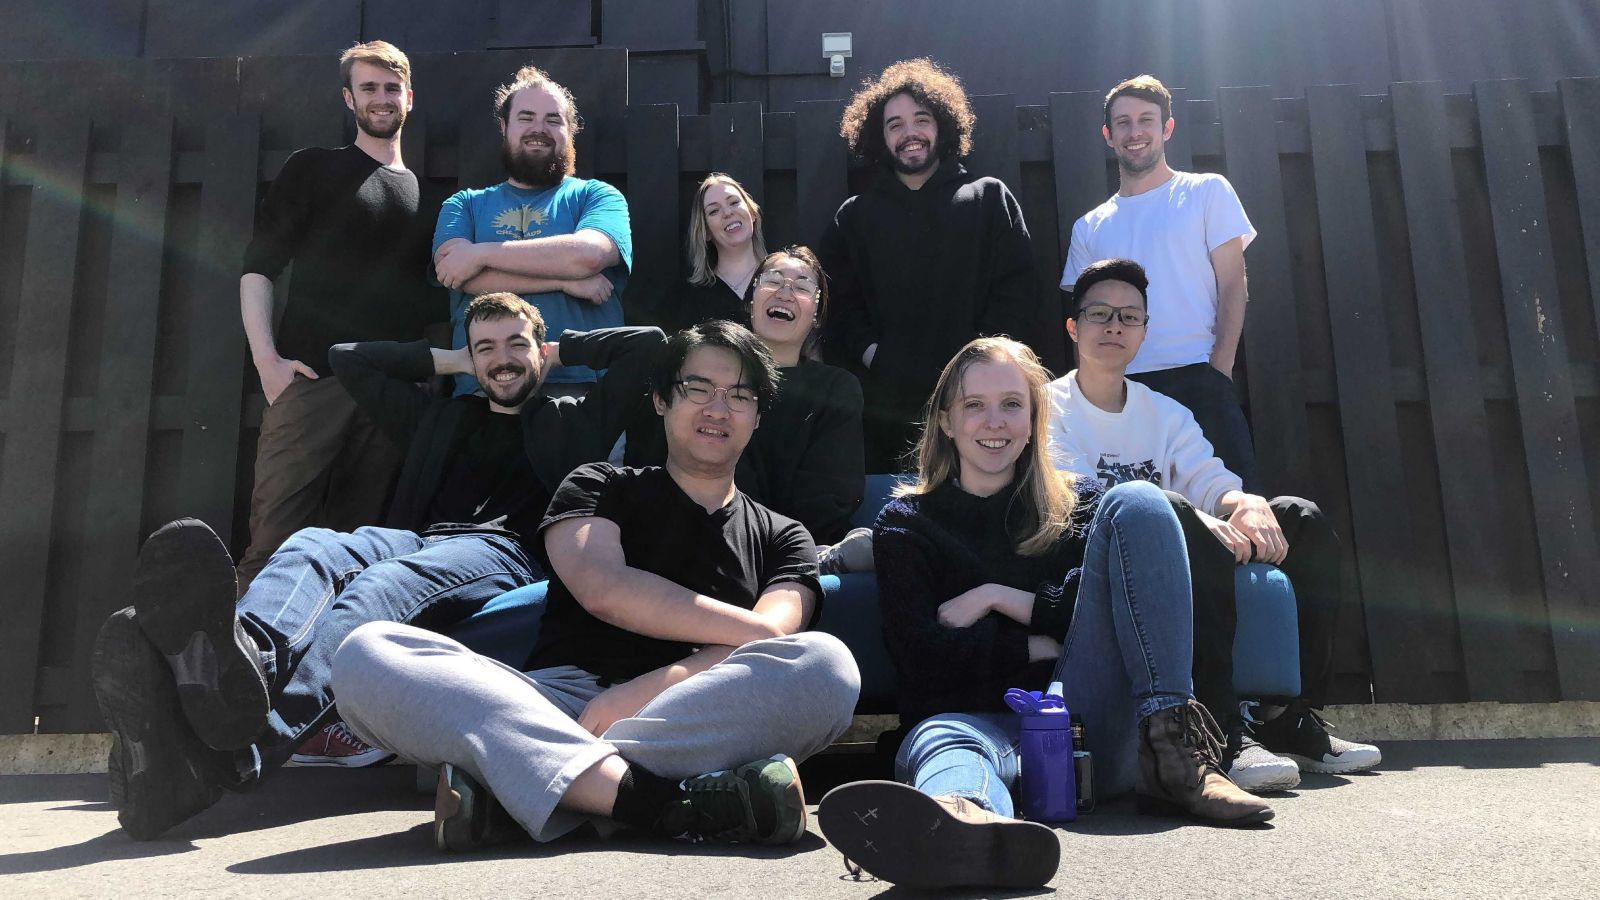 MDT students in a group photo